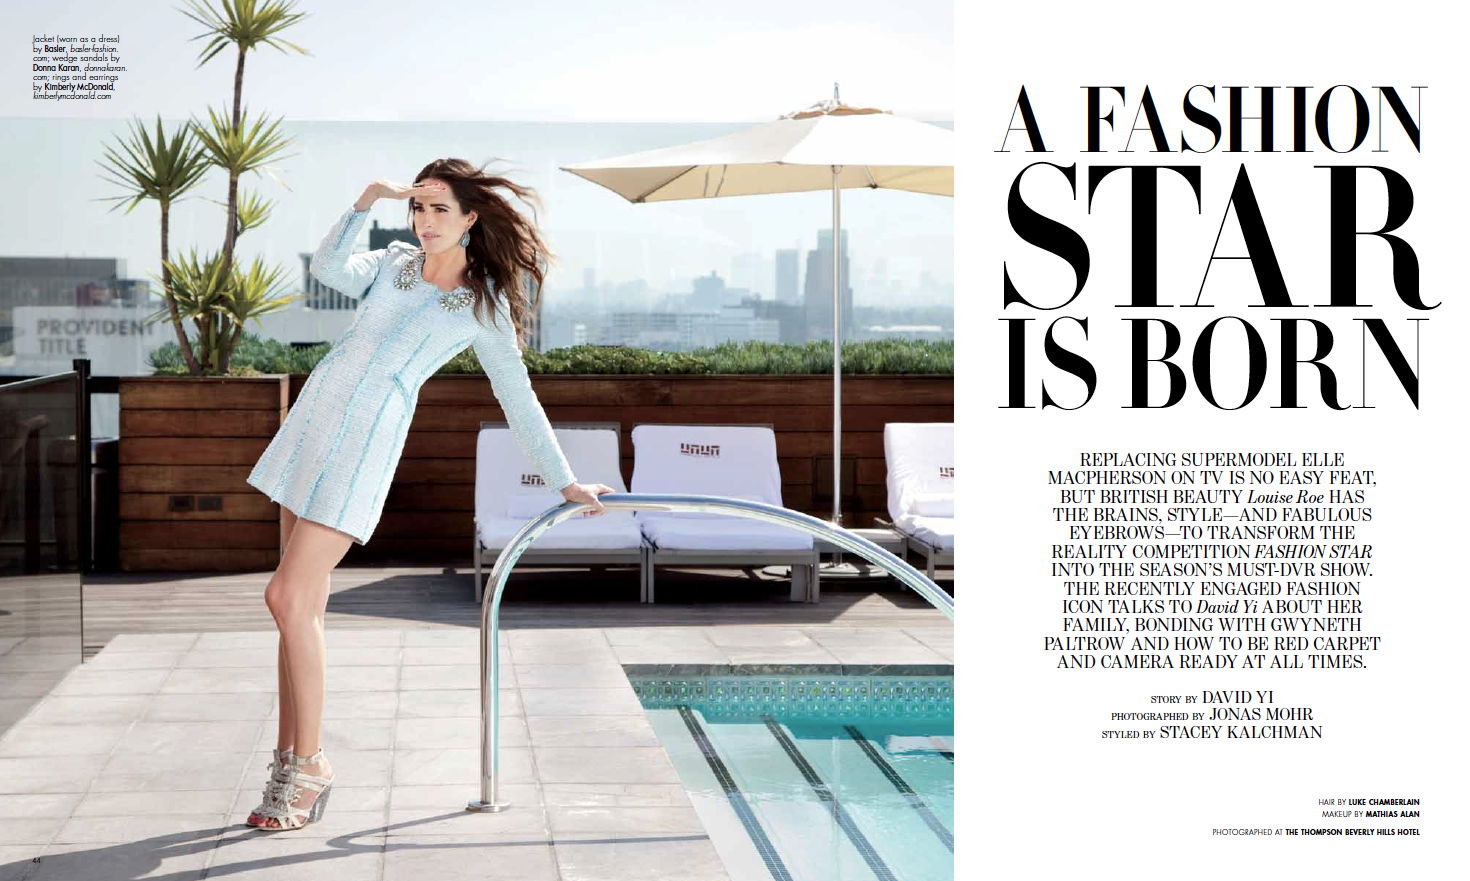 LOUISE ROE SCENE NY MAG3.png